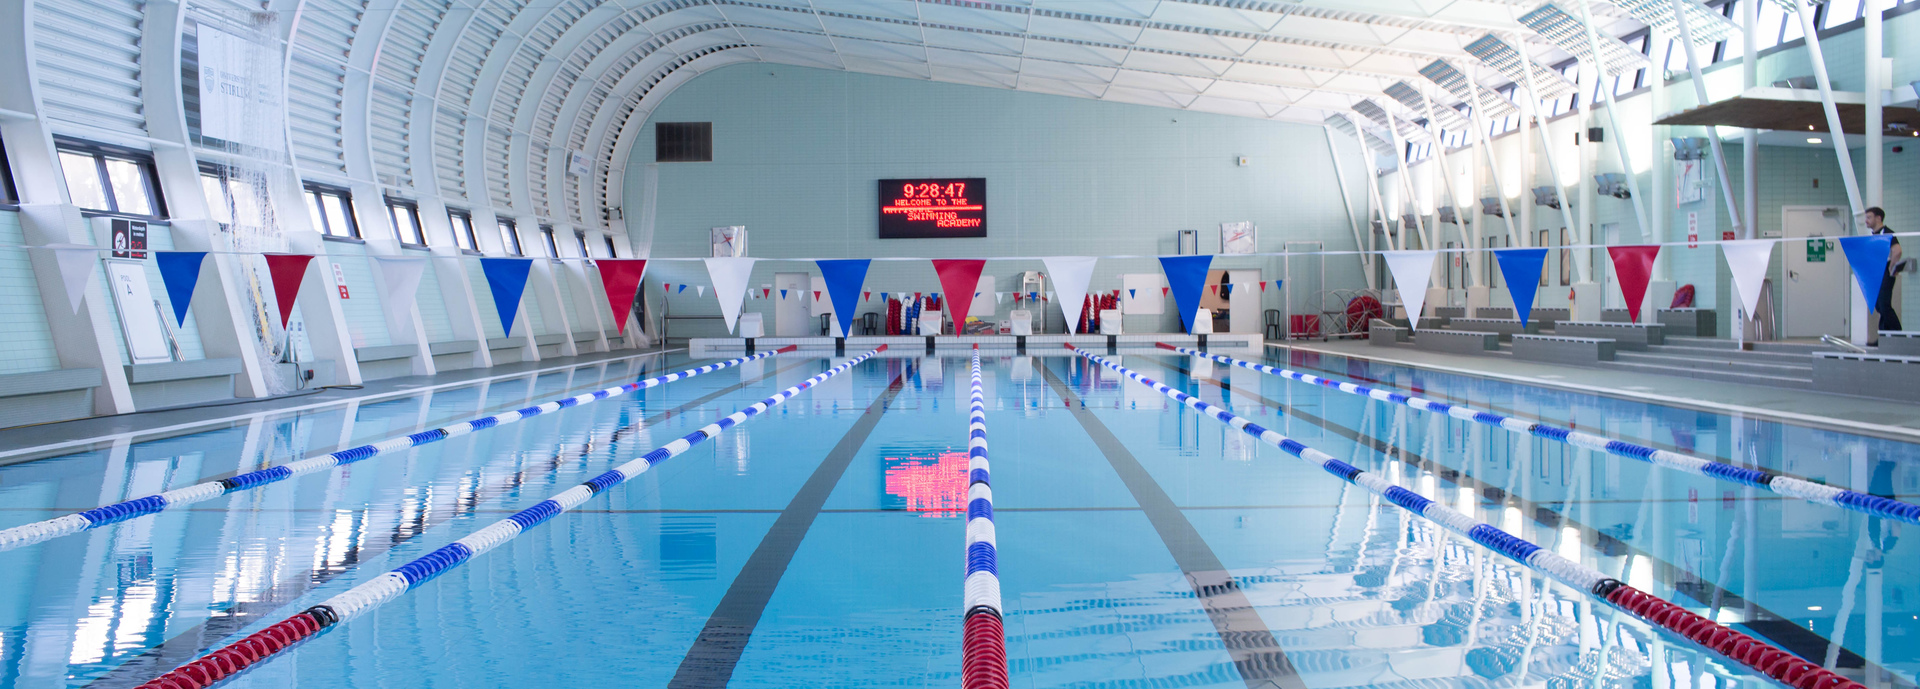 National Swimming Academy's pool